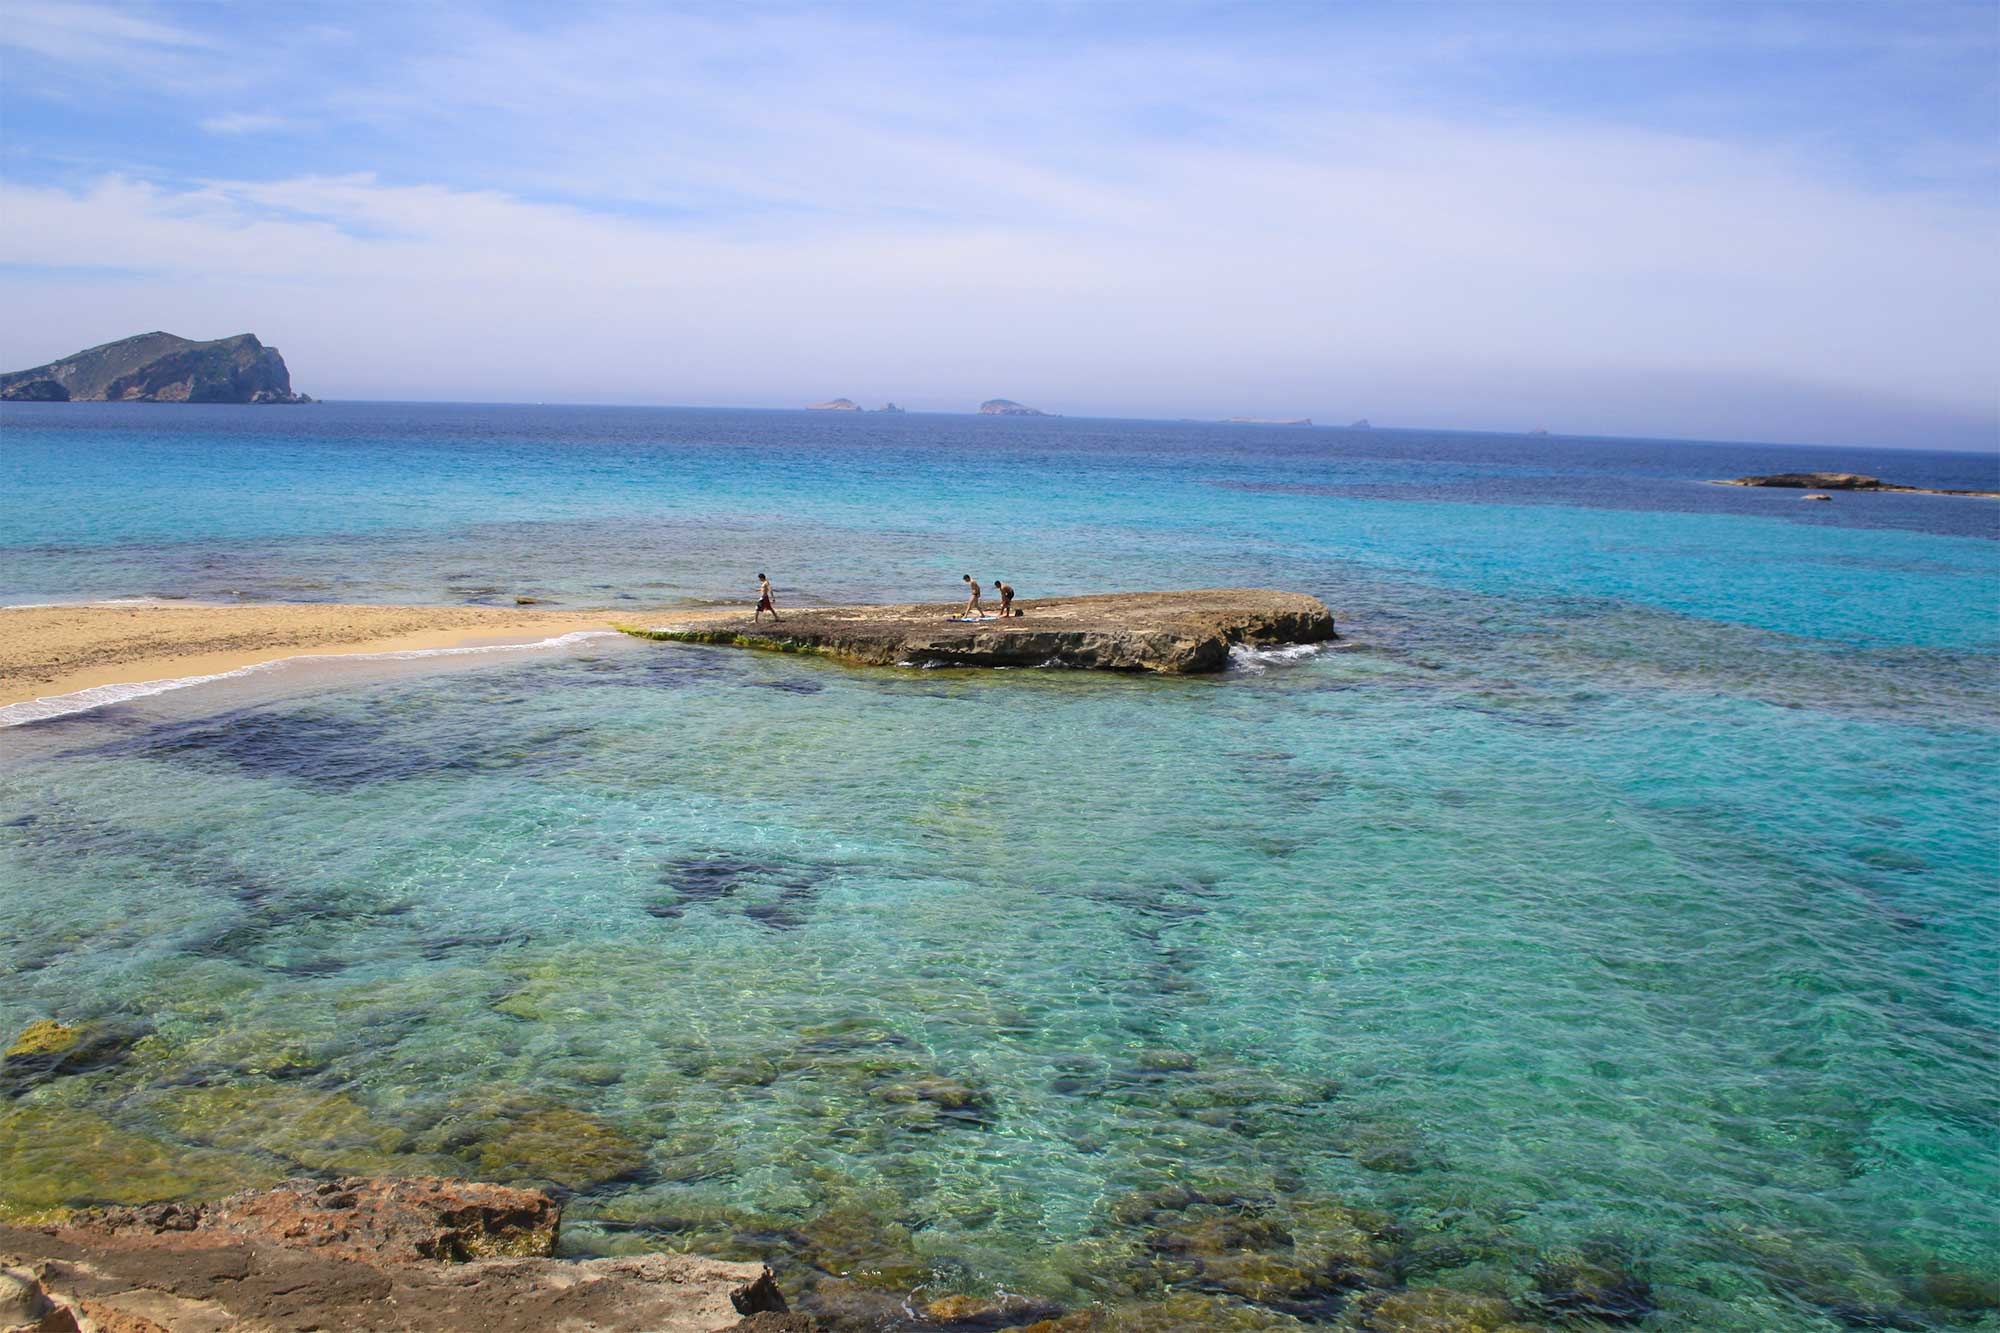 Cala Conta beach in Ibiza